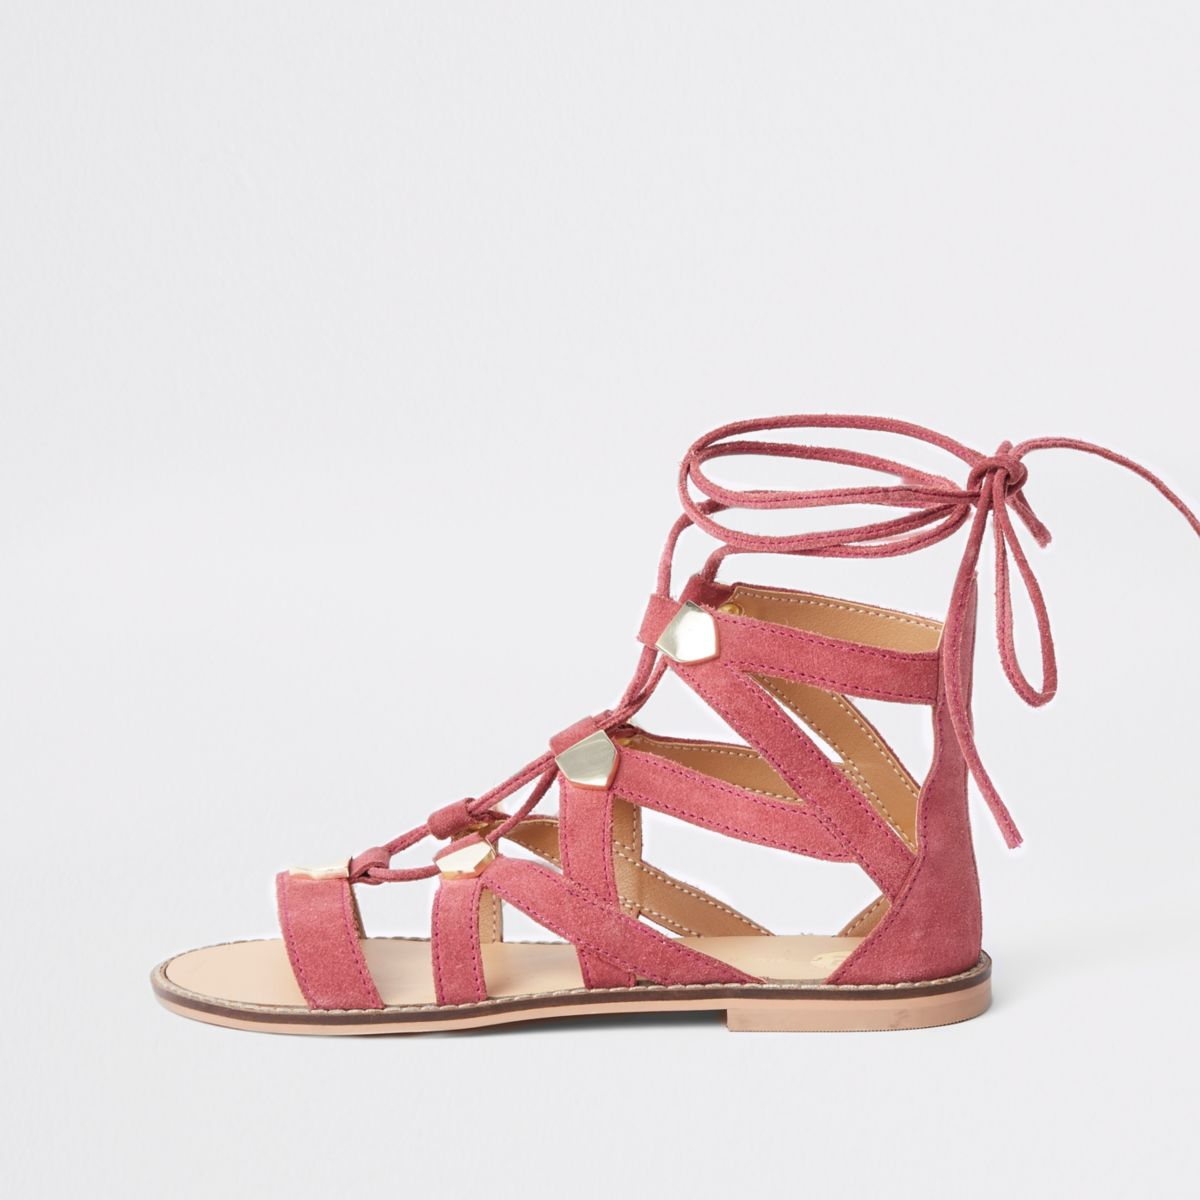 8f8547150dd Shoptagr | Pink Suede Caged Tie Up Sandal by River Island